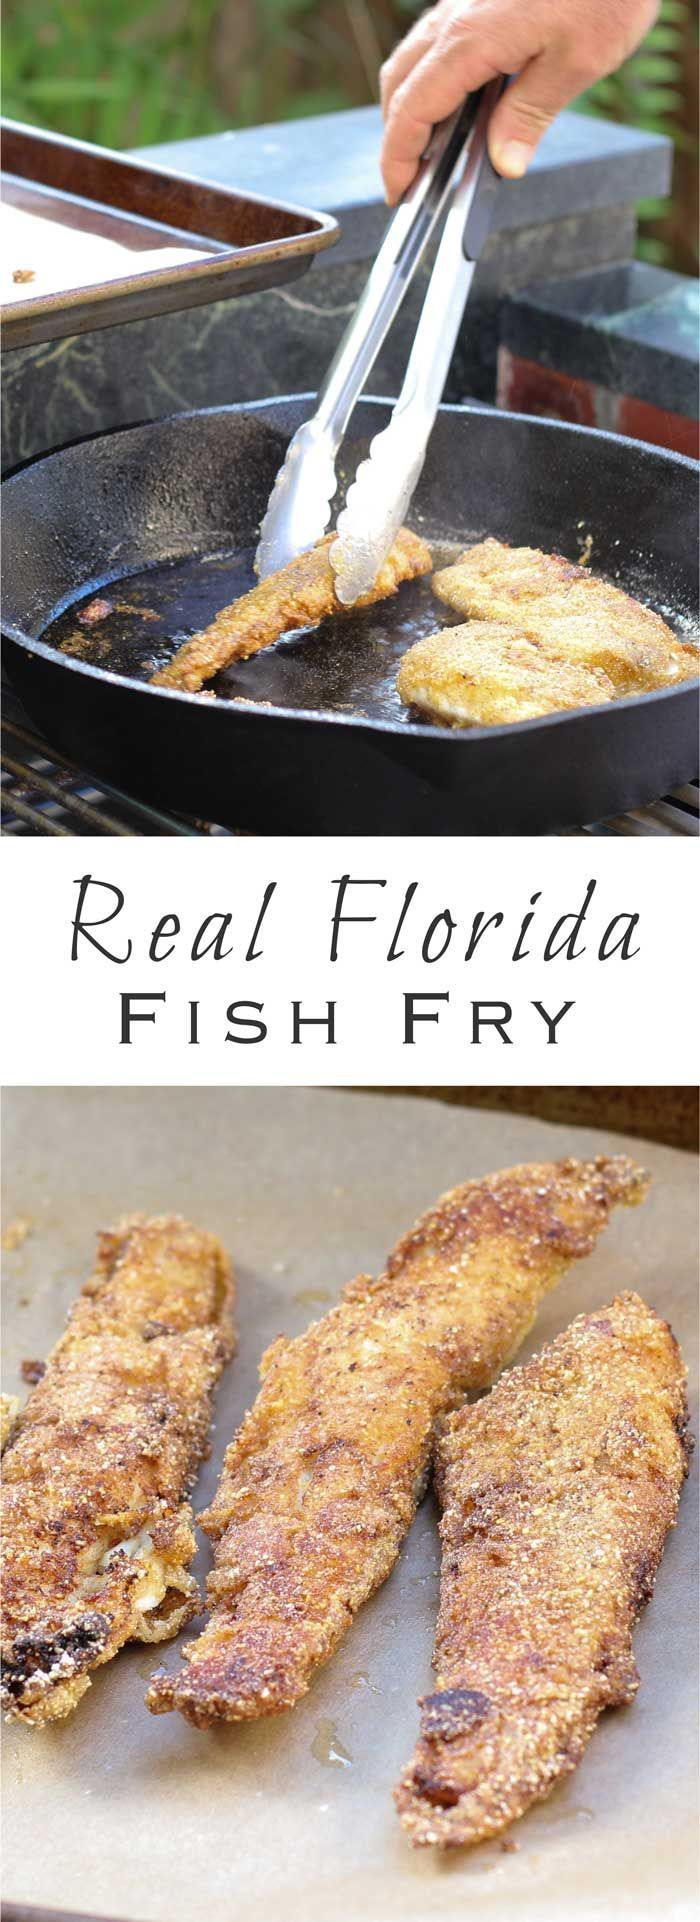 Fried trout - a delicious source of omega-3 fatty acids 58